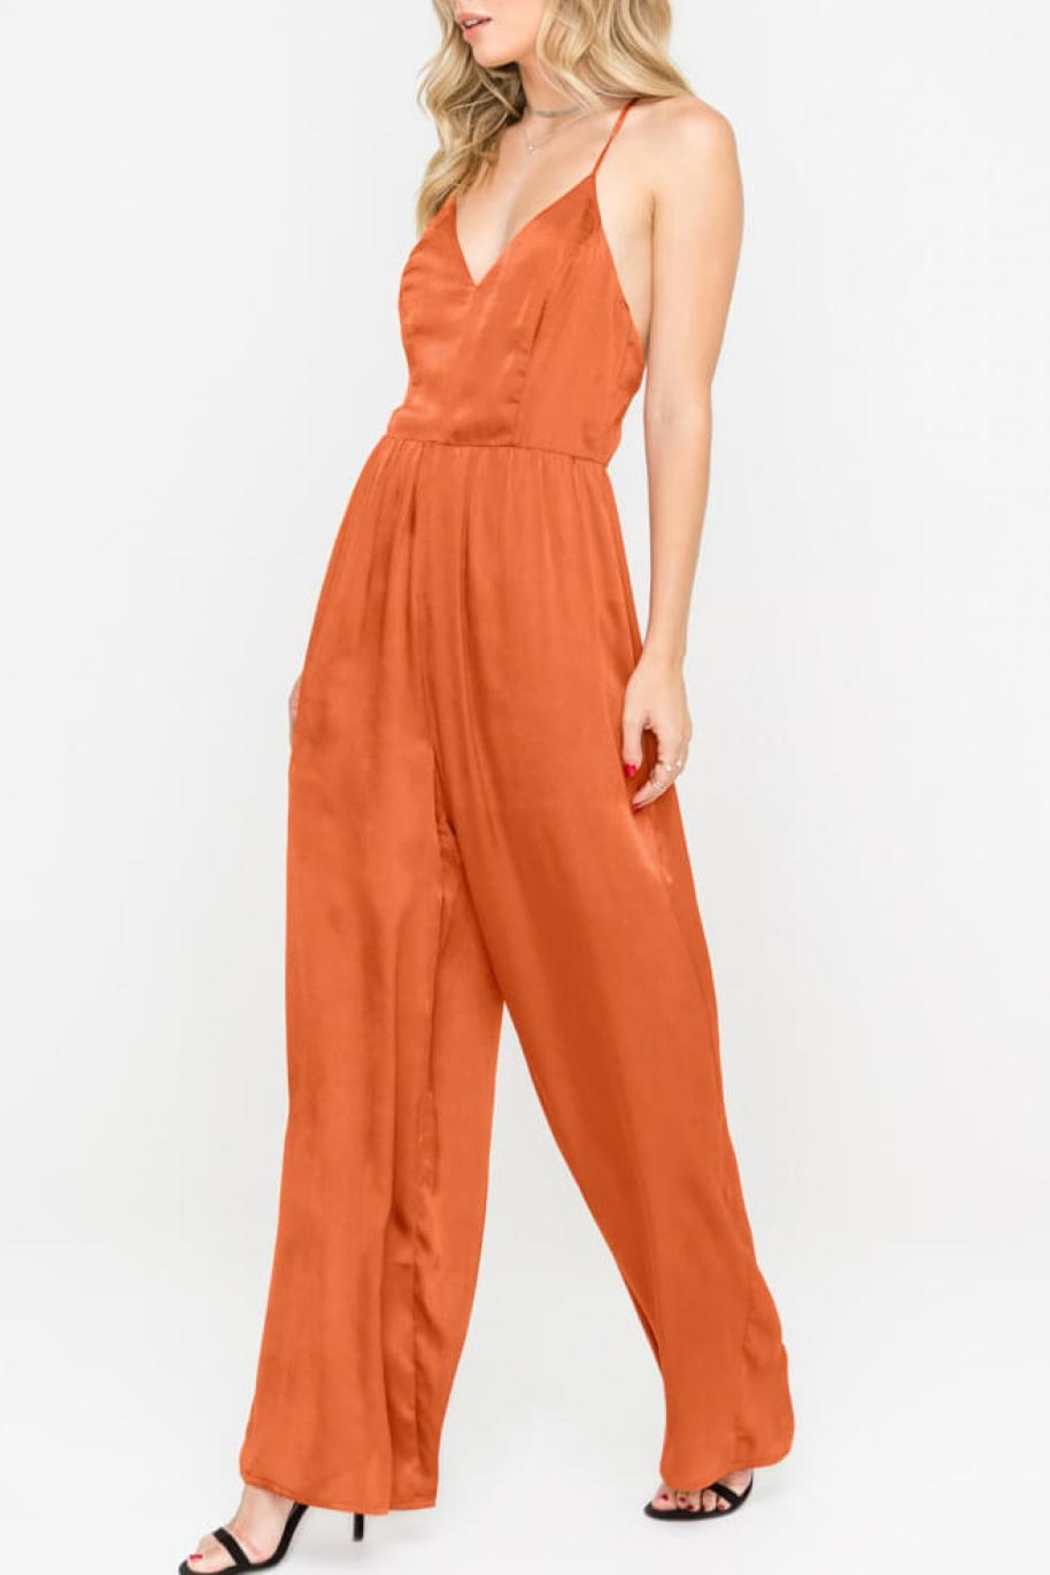 7e2fed0daf Lush Open-Back Wide-Leg Jumpsuit from Virginia by mod soul — Shoptiques